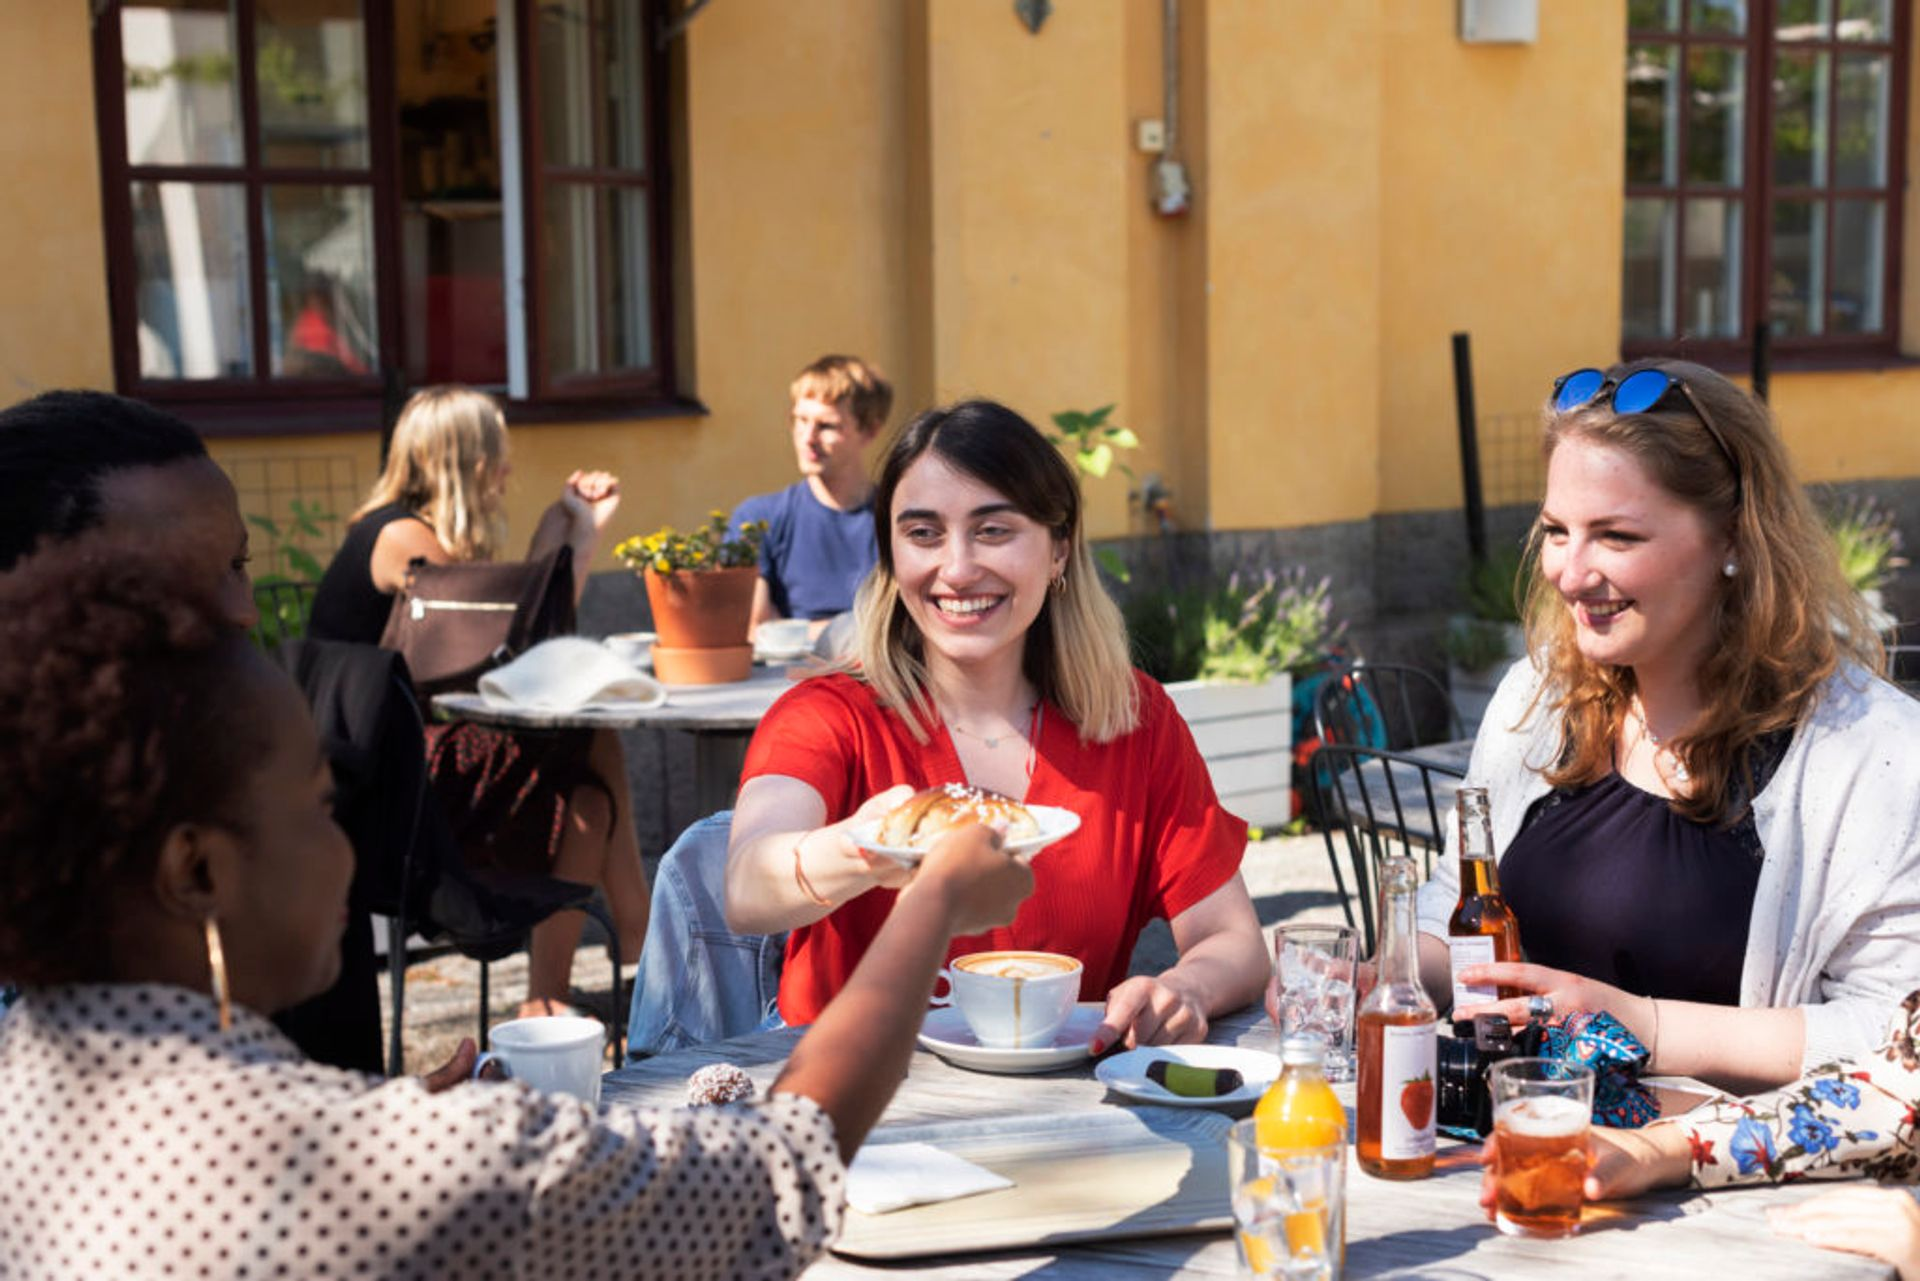 Hazal and other students sitting outisde at a cafe having traditional Swedish Fika.